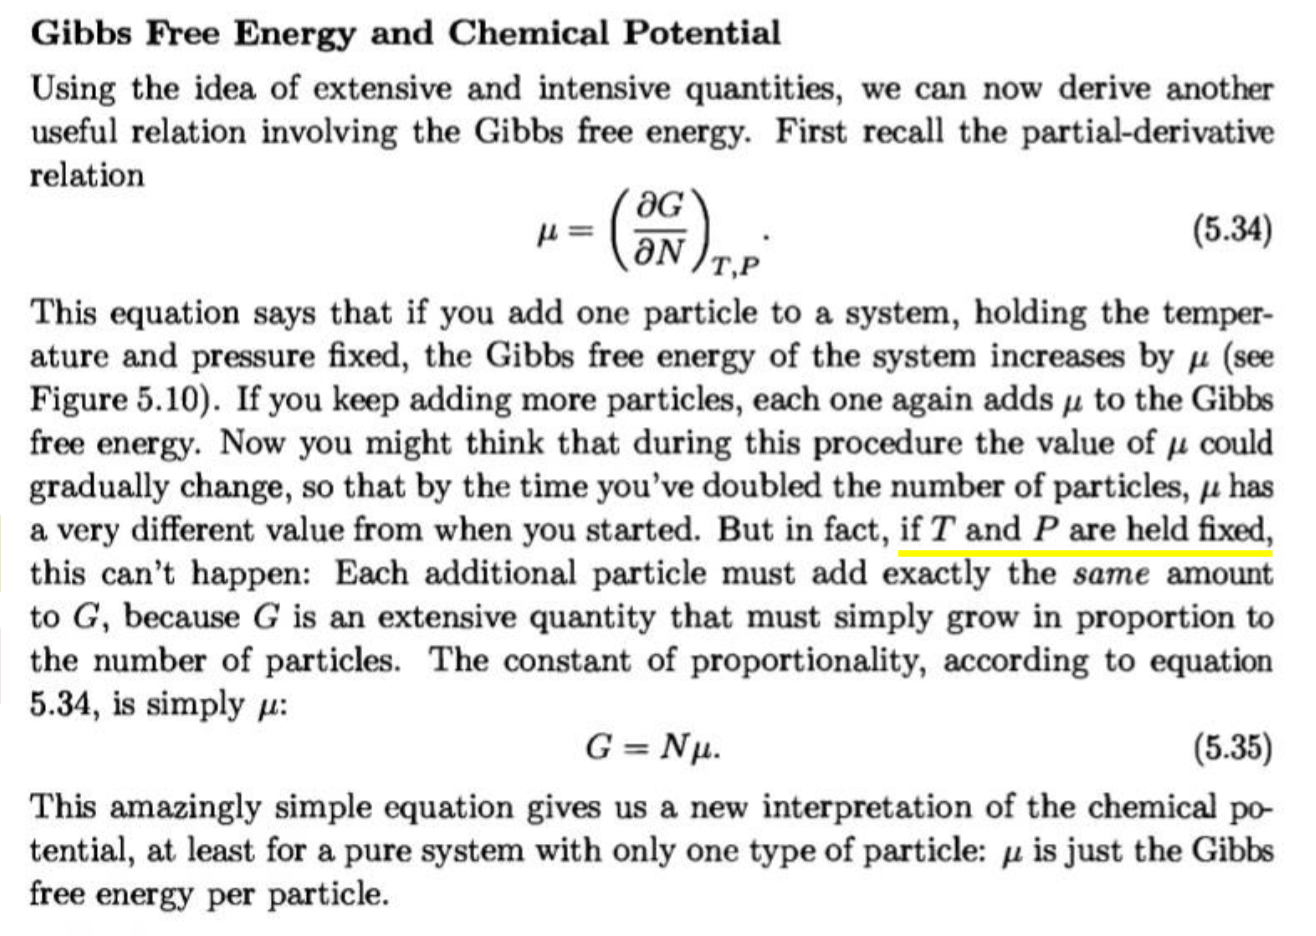 Proportionality Between Gibbs Free Energy And Number Of